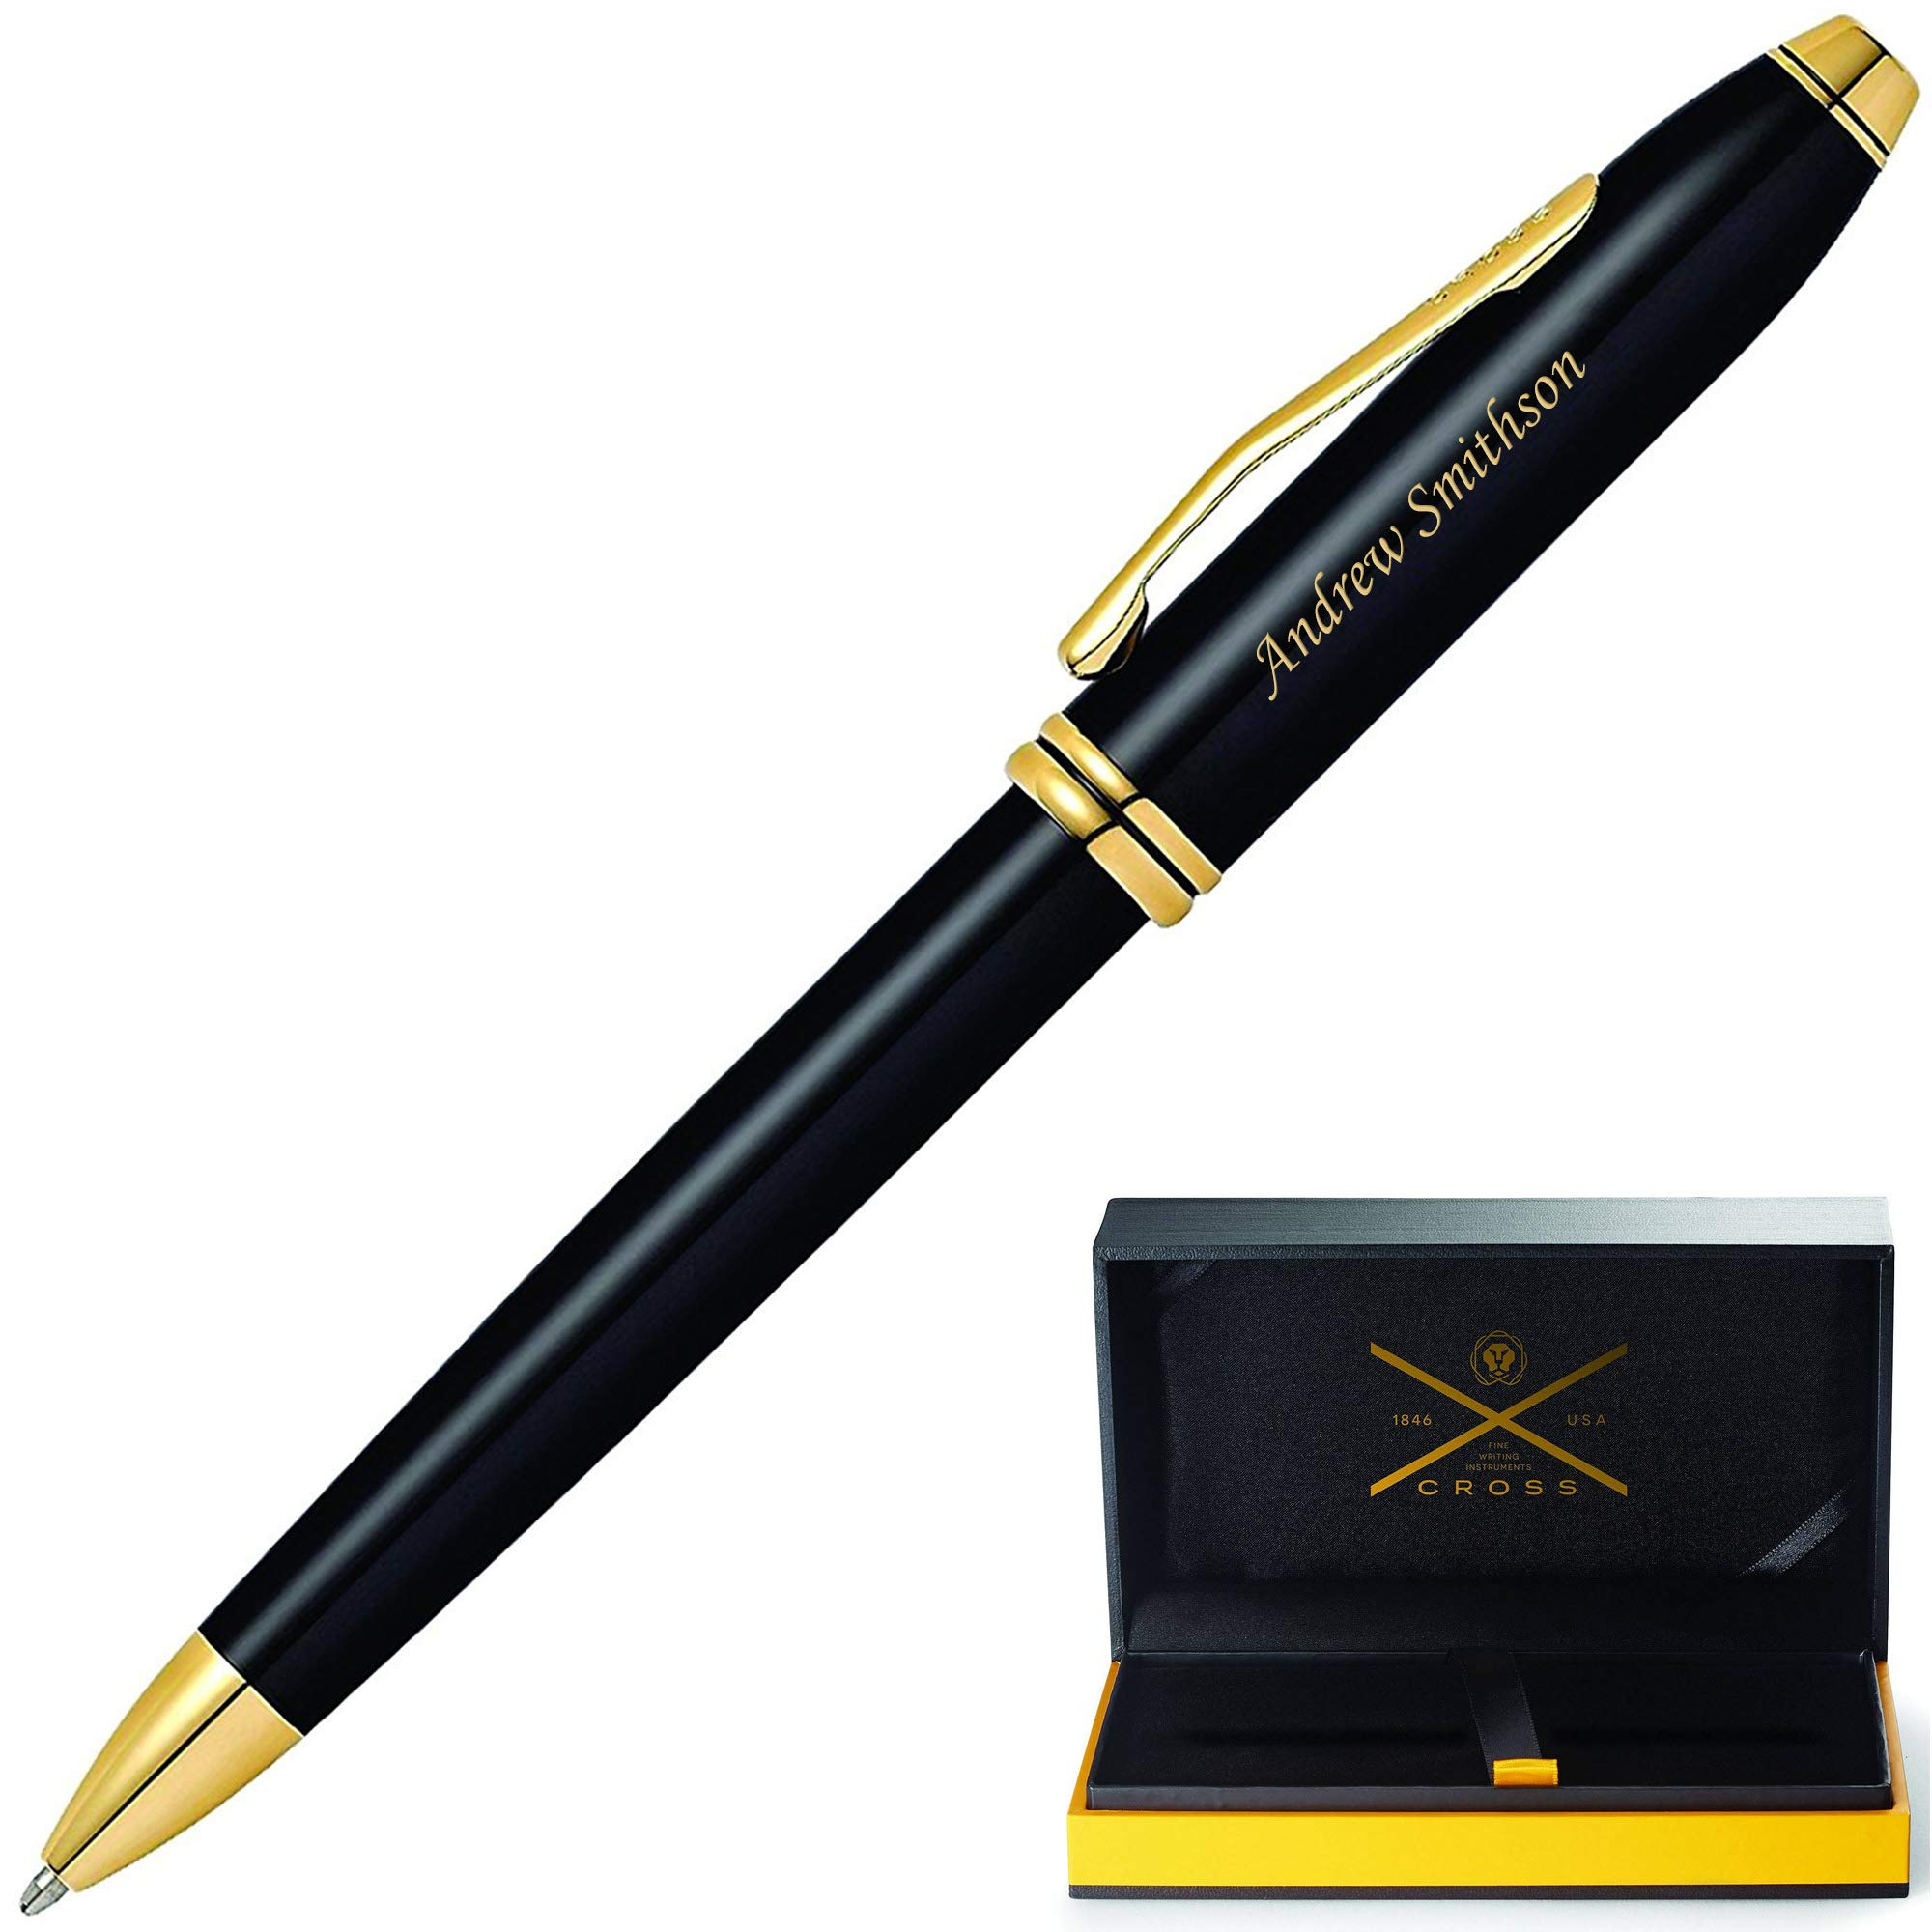 Cross Pen | Engraved/Personalized AT Cross Townsend Black with 23krt Gold ballpoint. Customized Gift Pen. Fast 1 Day Engraving